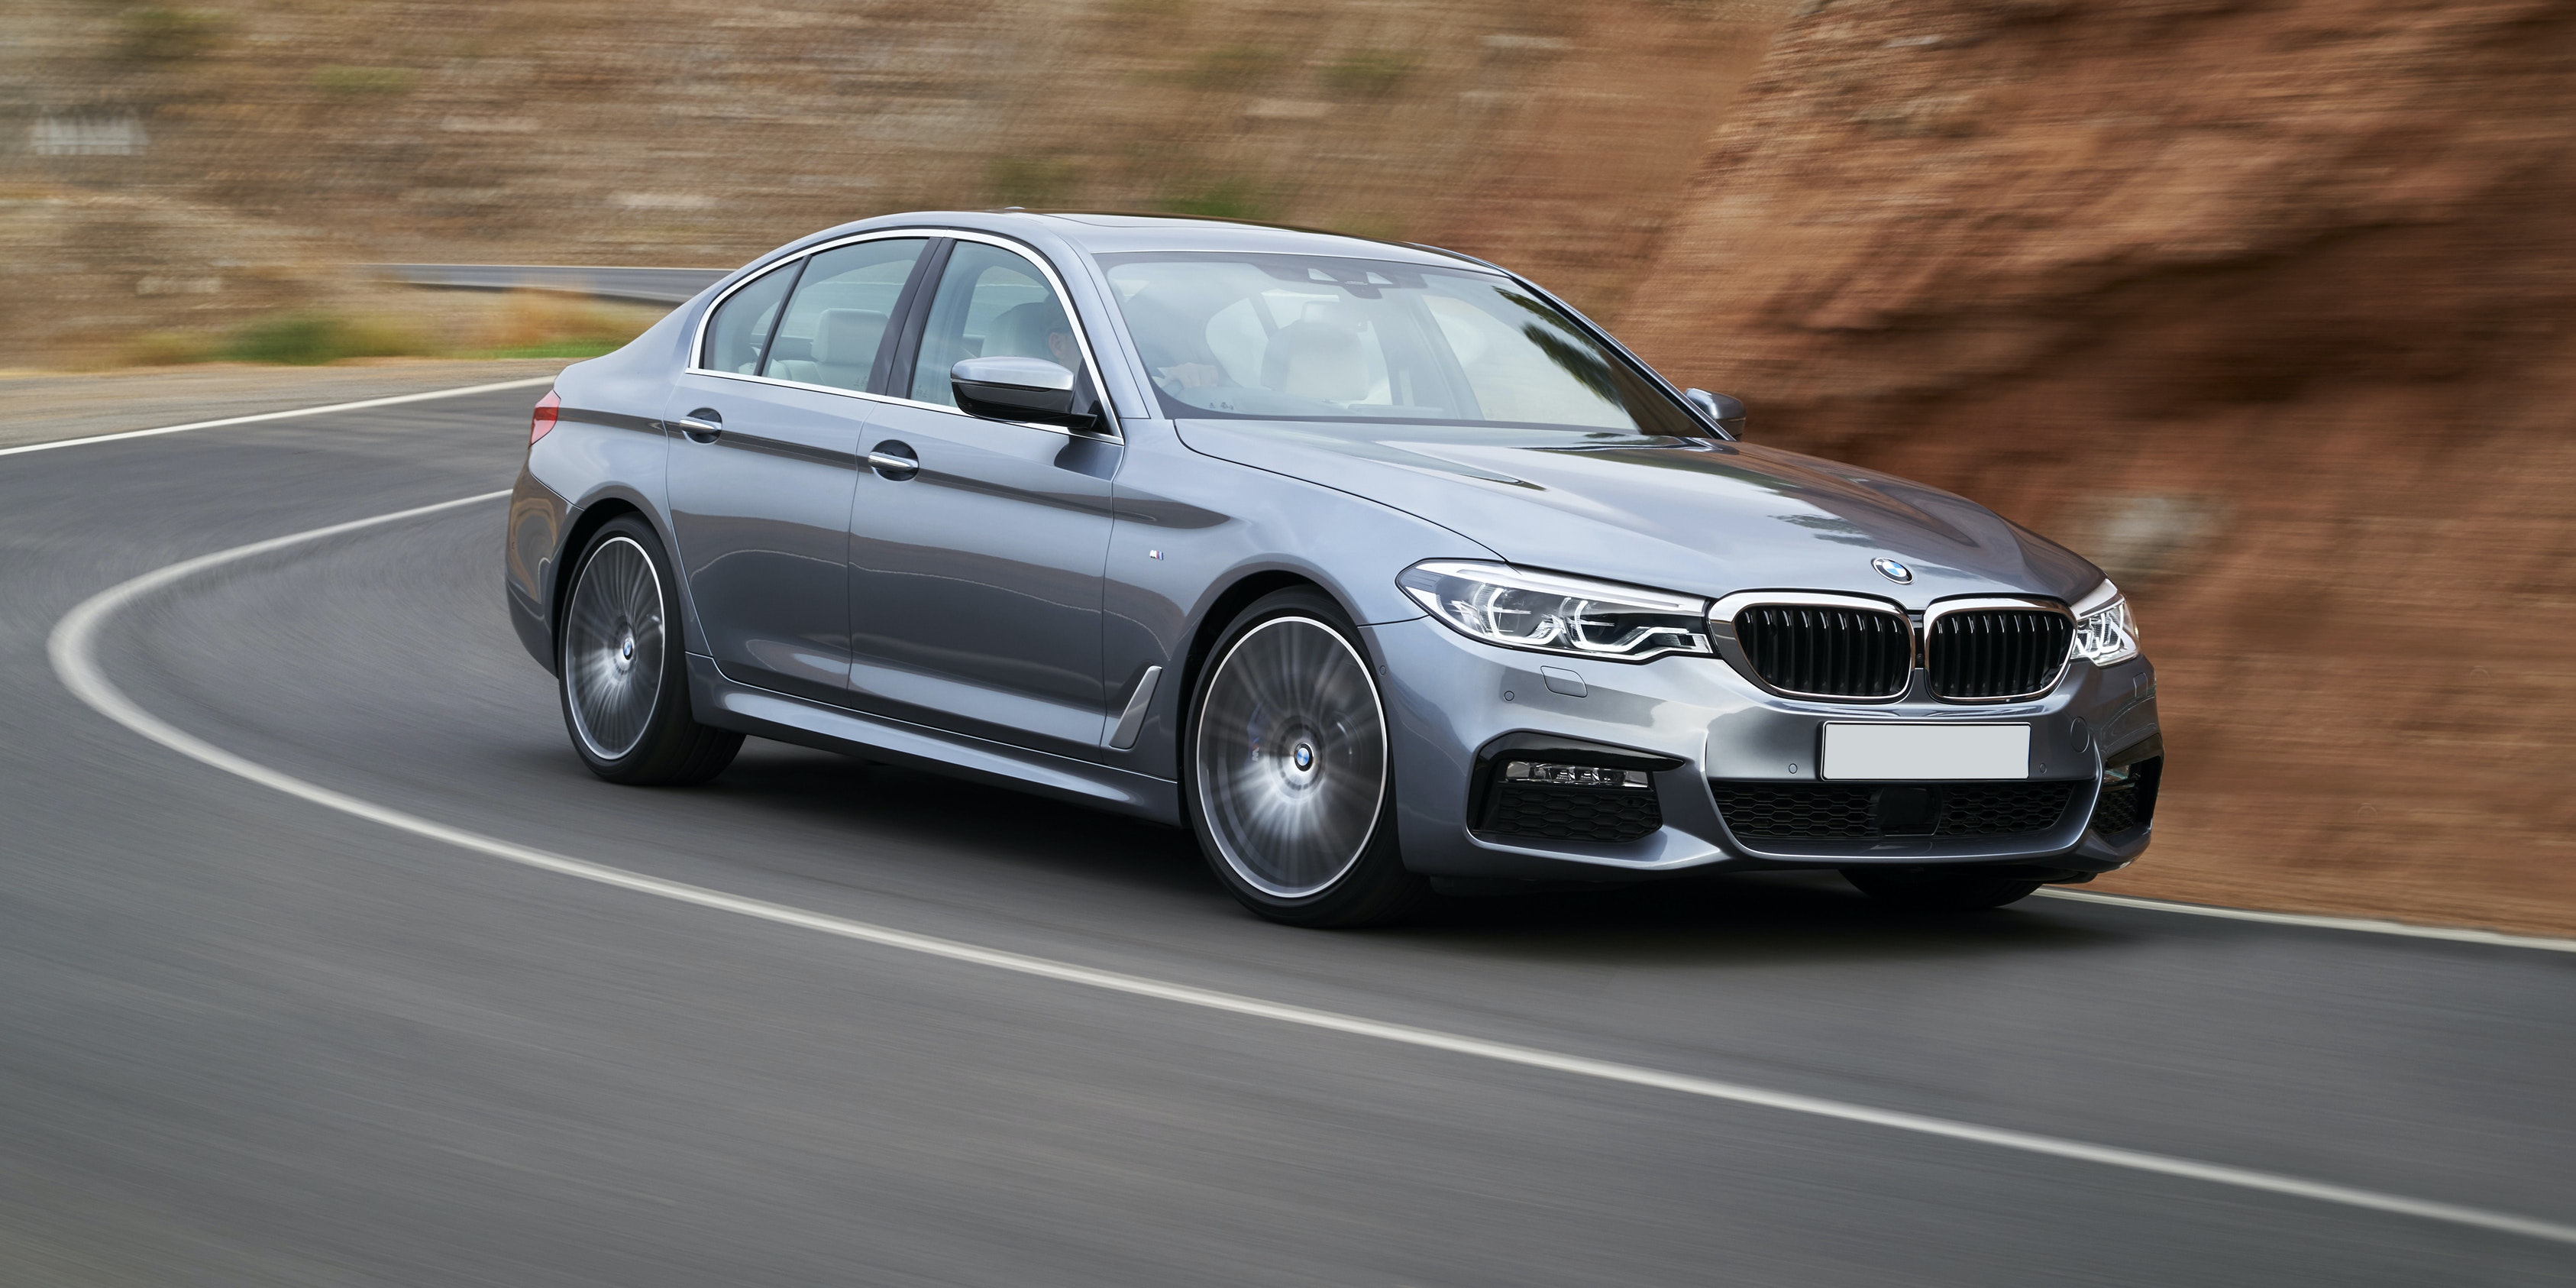 2018 Bmw M5 Us Release Date >> BMW 5 Series Review | carwow